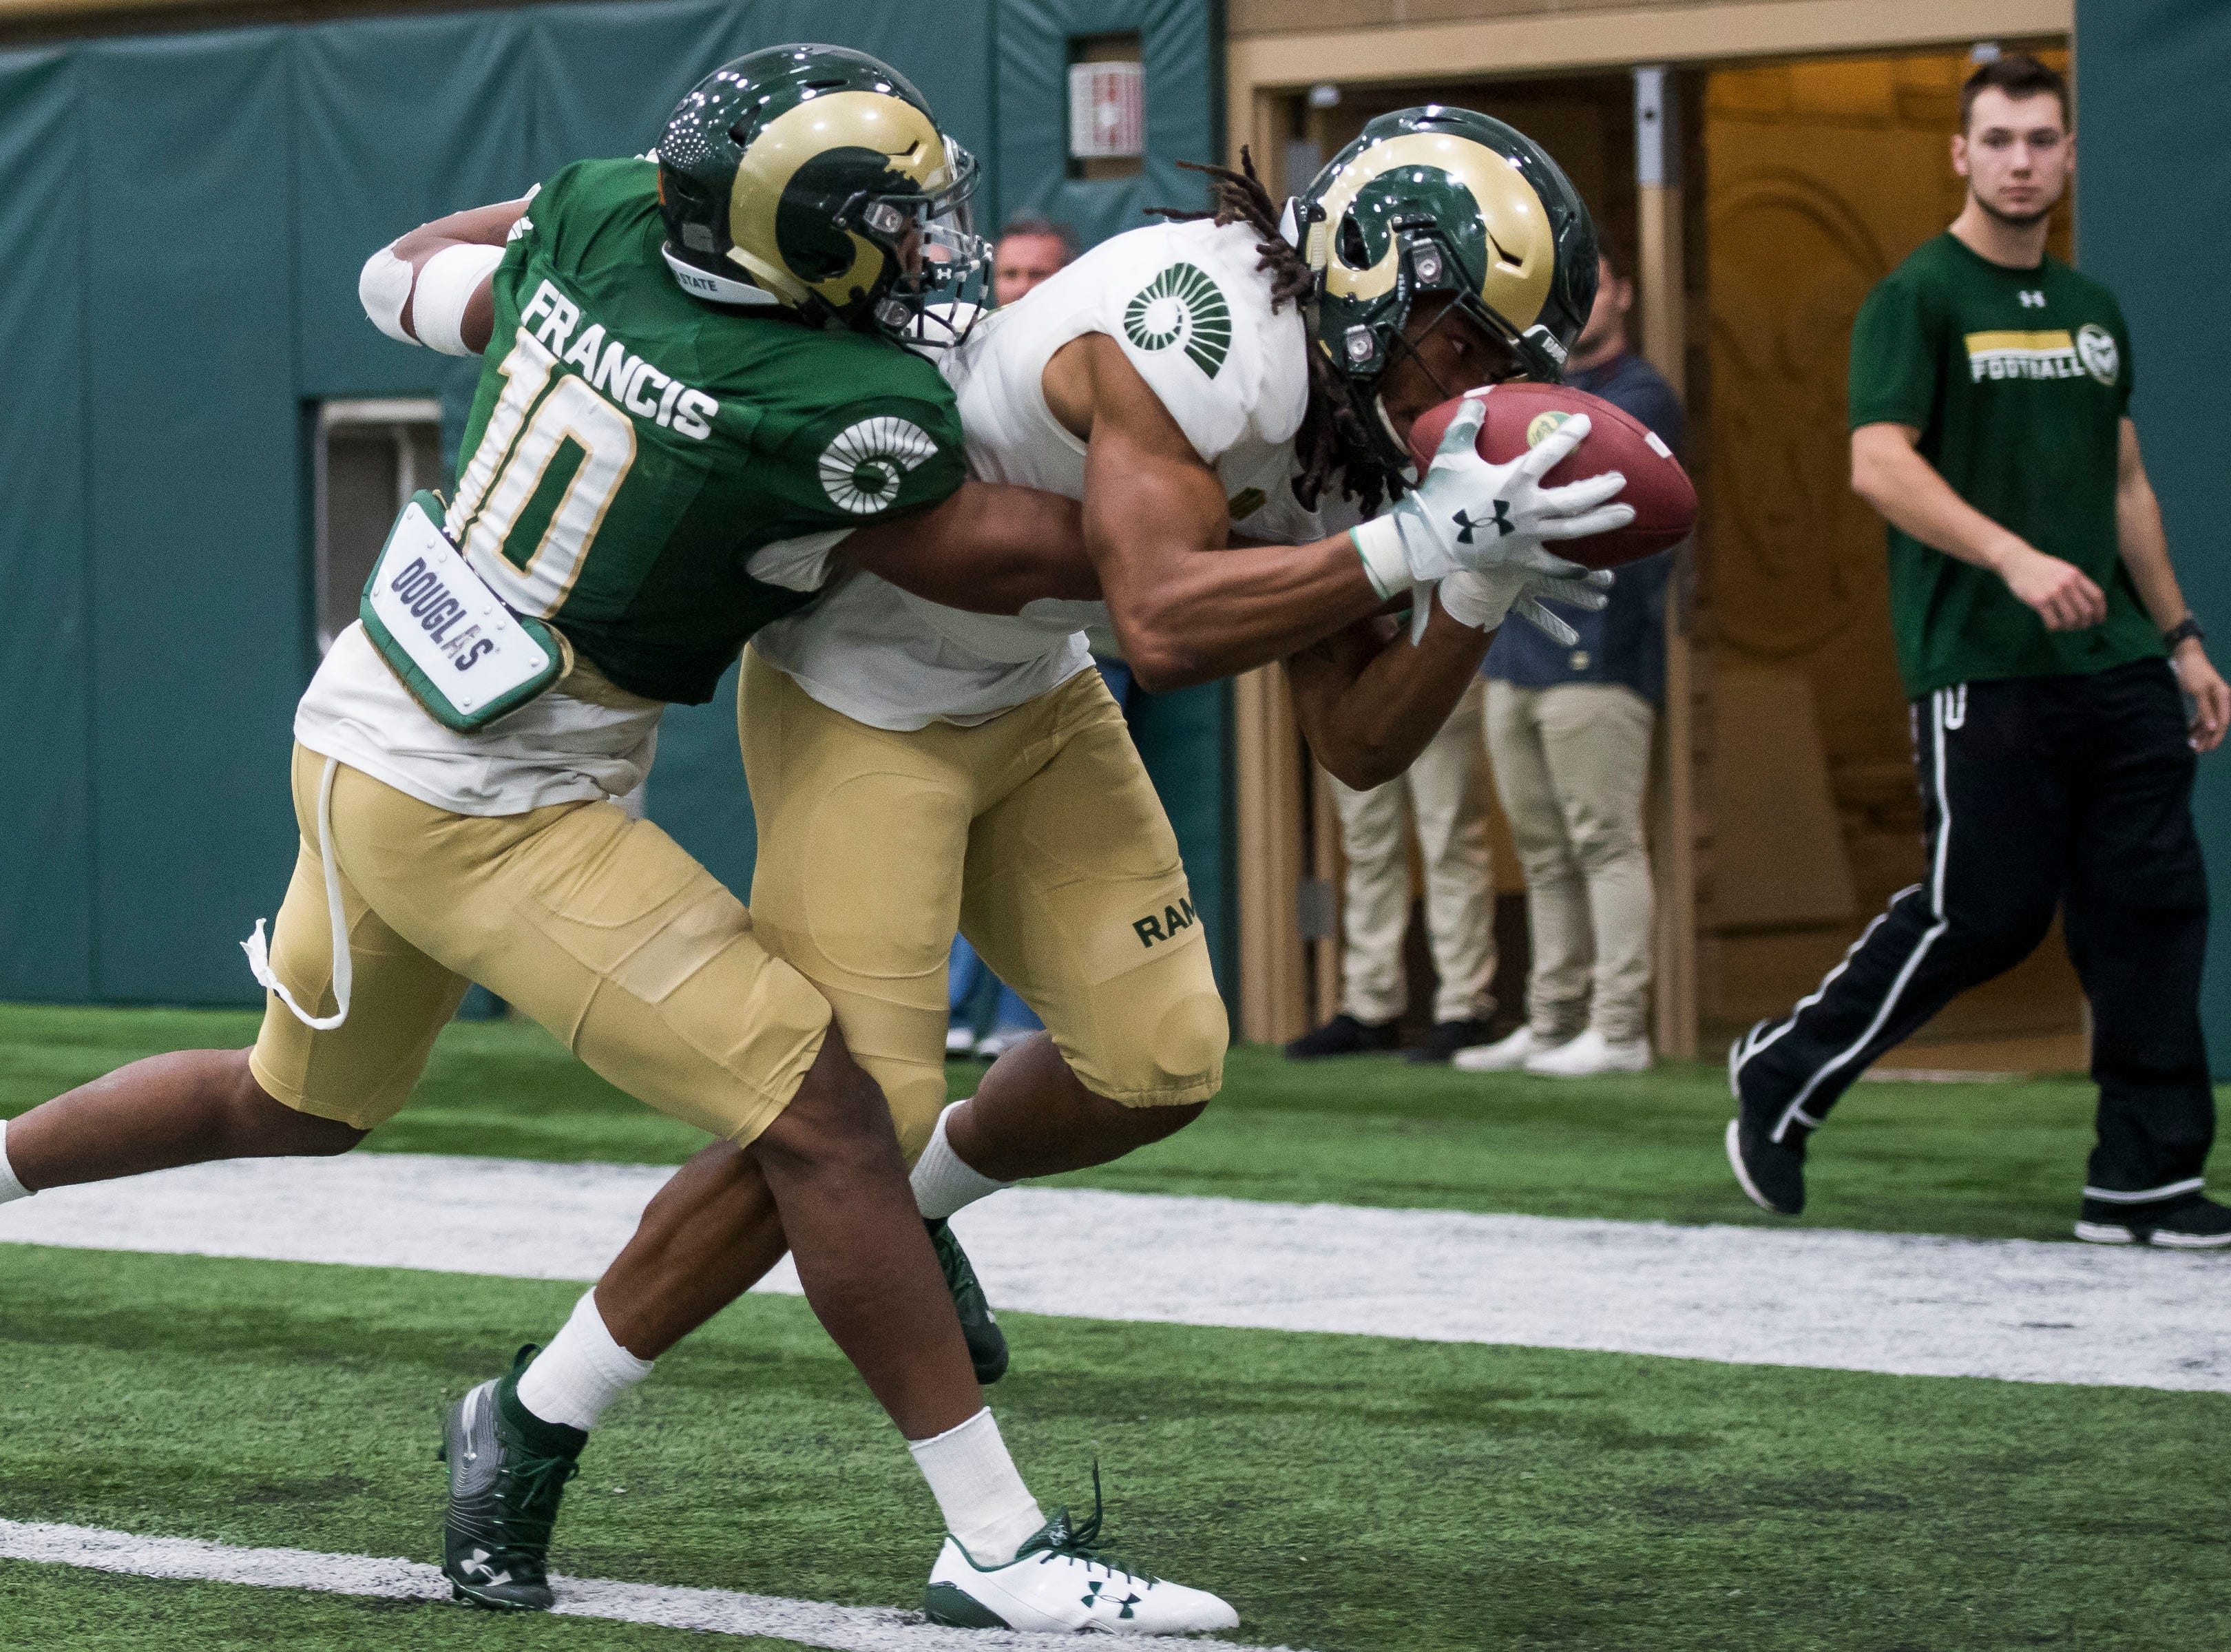 CSU sophomore wide receiver A'Jon Vivens (20) secures a touchdown reception while being defended by sophomore safety Tywan Francis (10) during CSU's Spring game on Thursday, March 14, 2019, at their indoor practice facility in Fort Collins, Colo.